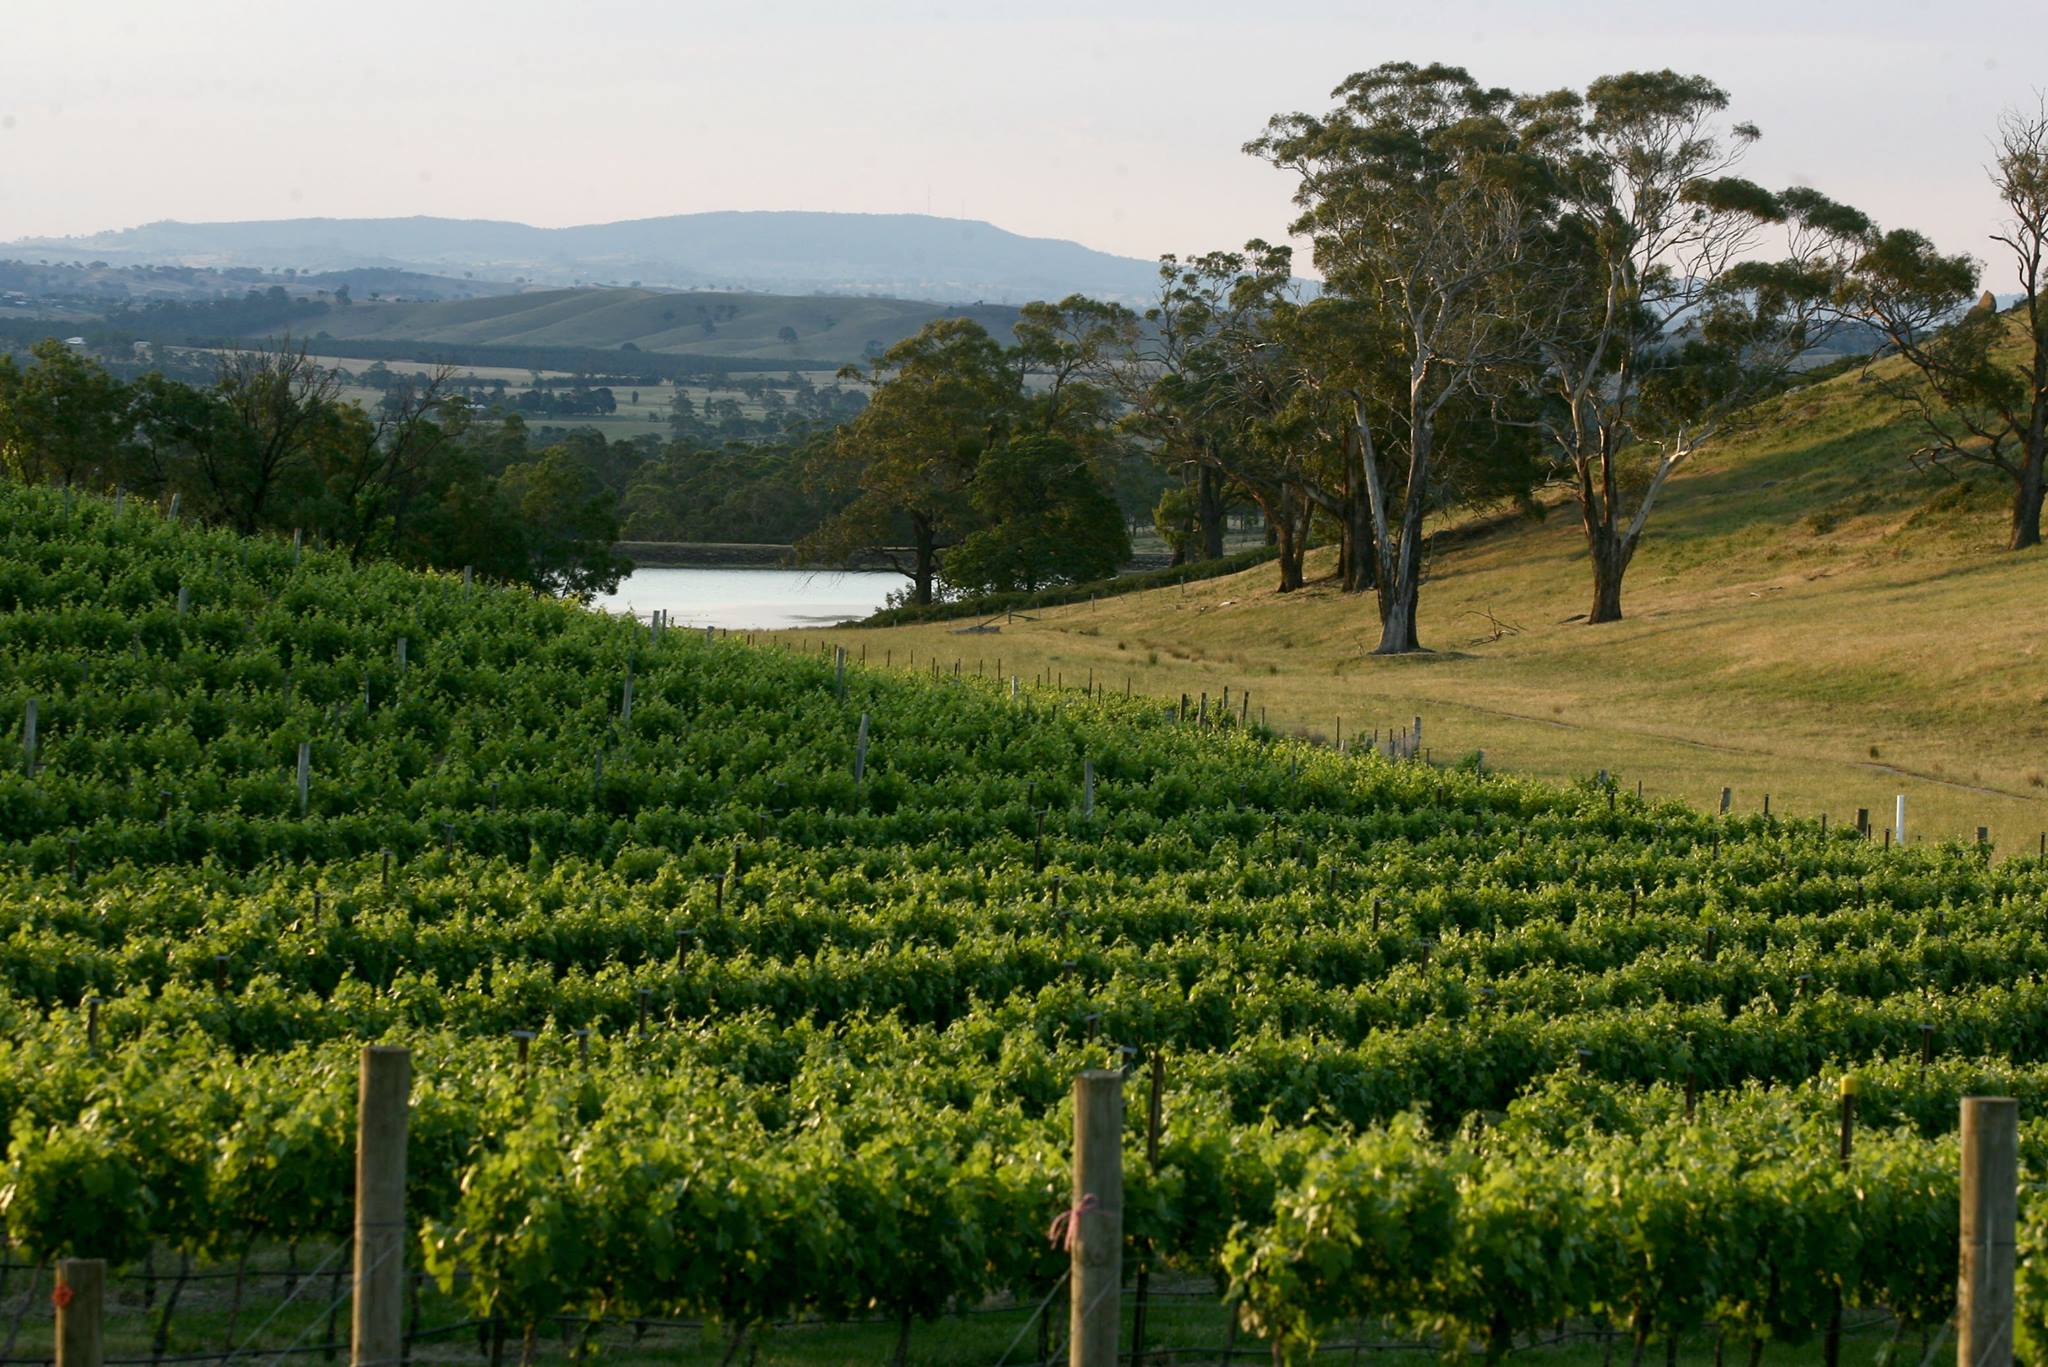 View over the vines at Granite Hills Winery in the Macedon Ranges Region